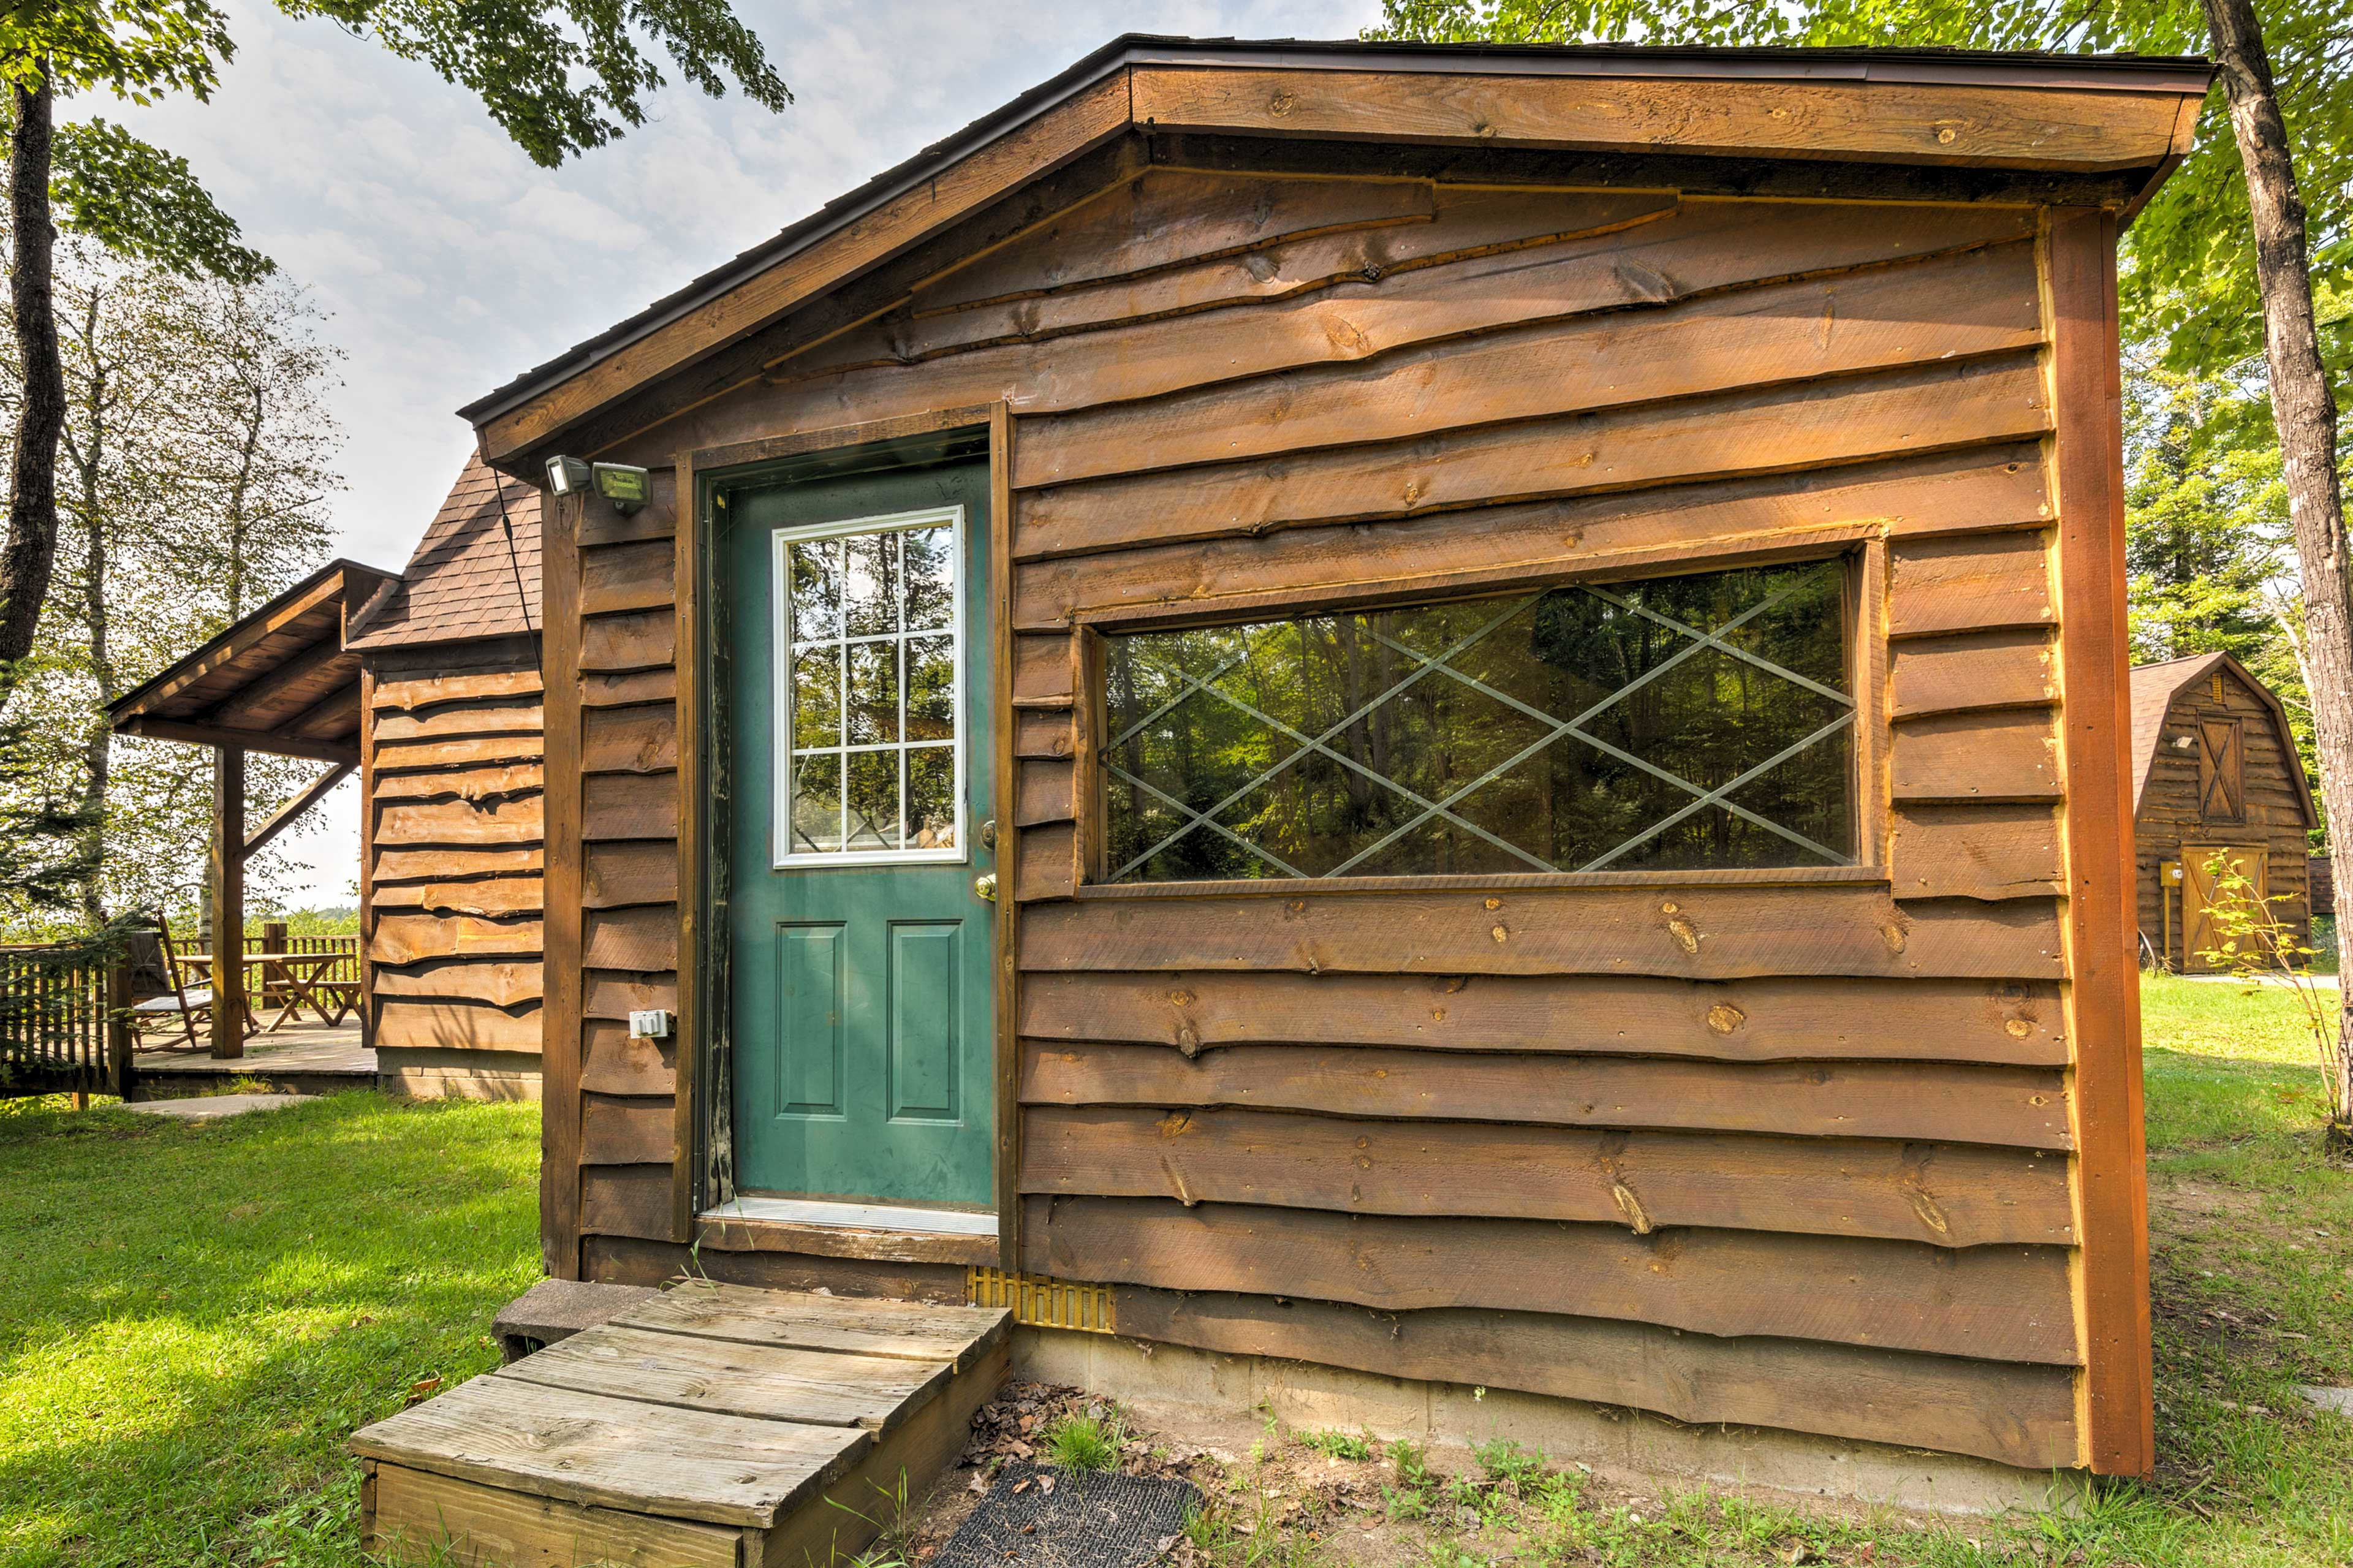 This vacation rental cabin is the perfect rustic retreat in Manistique.